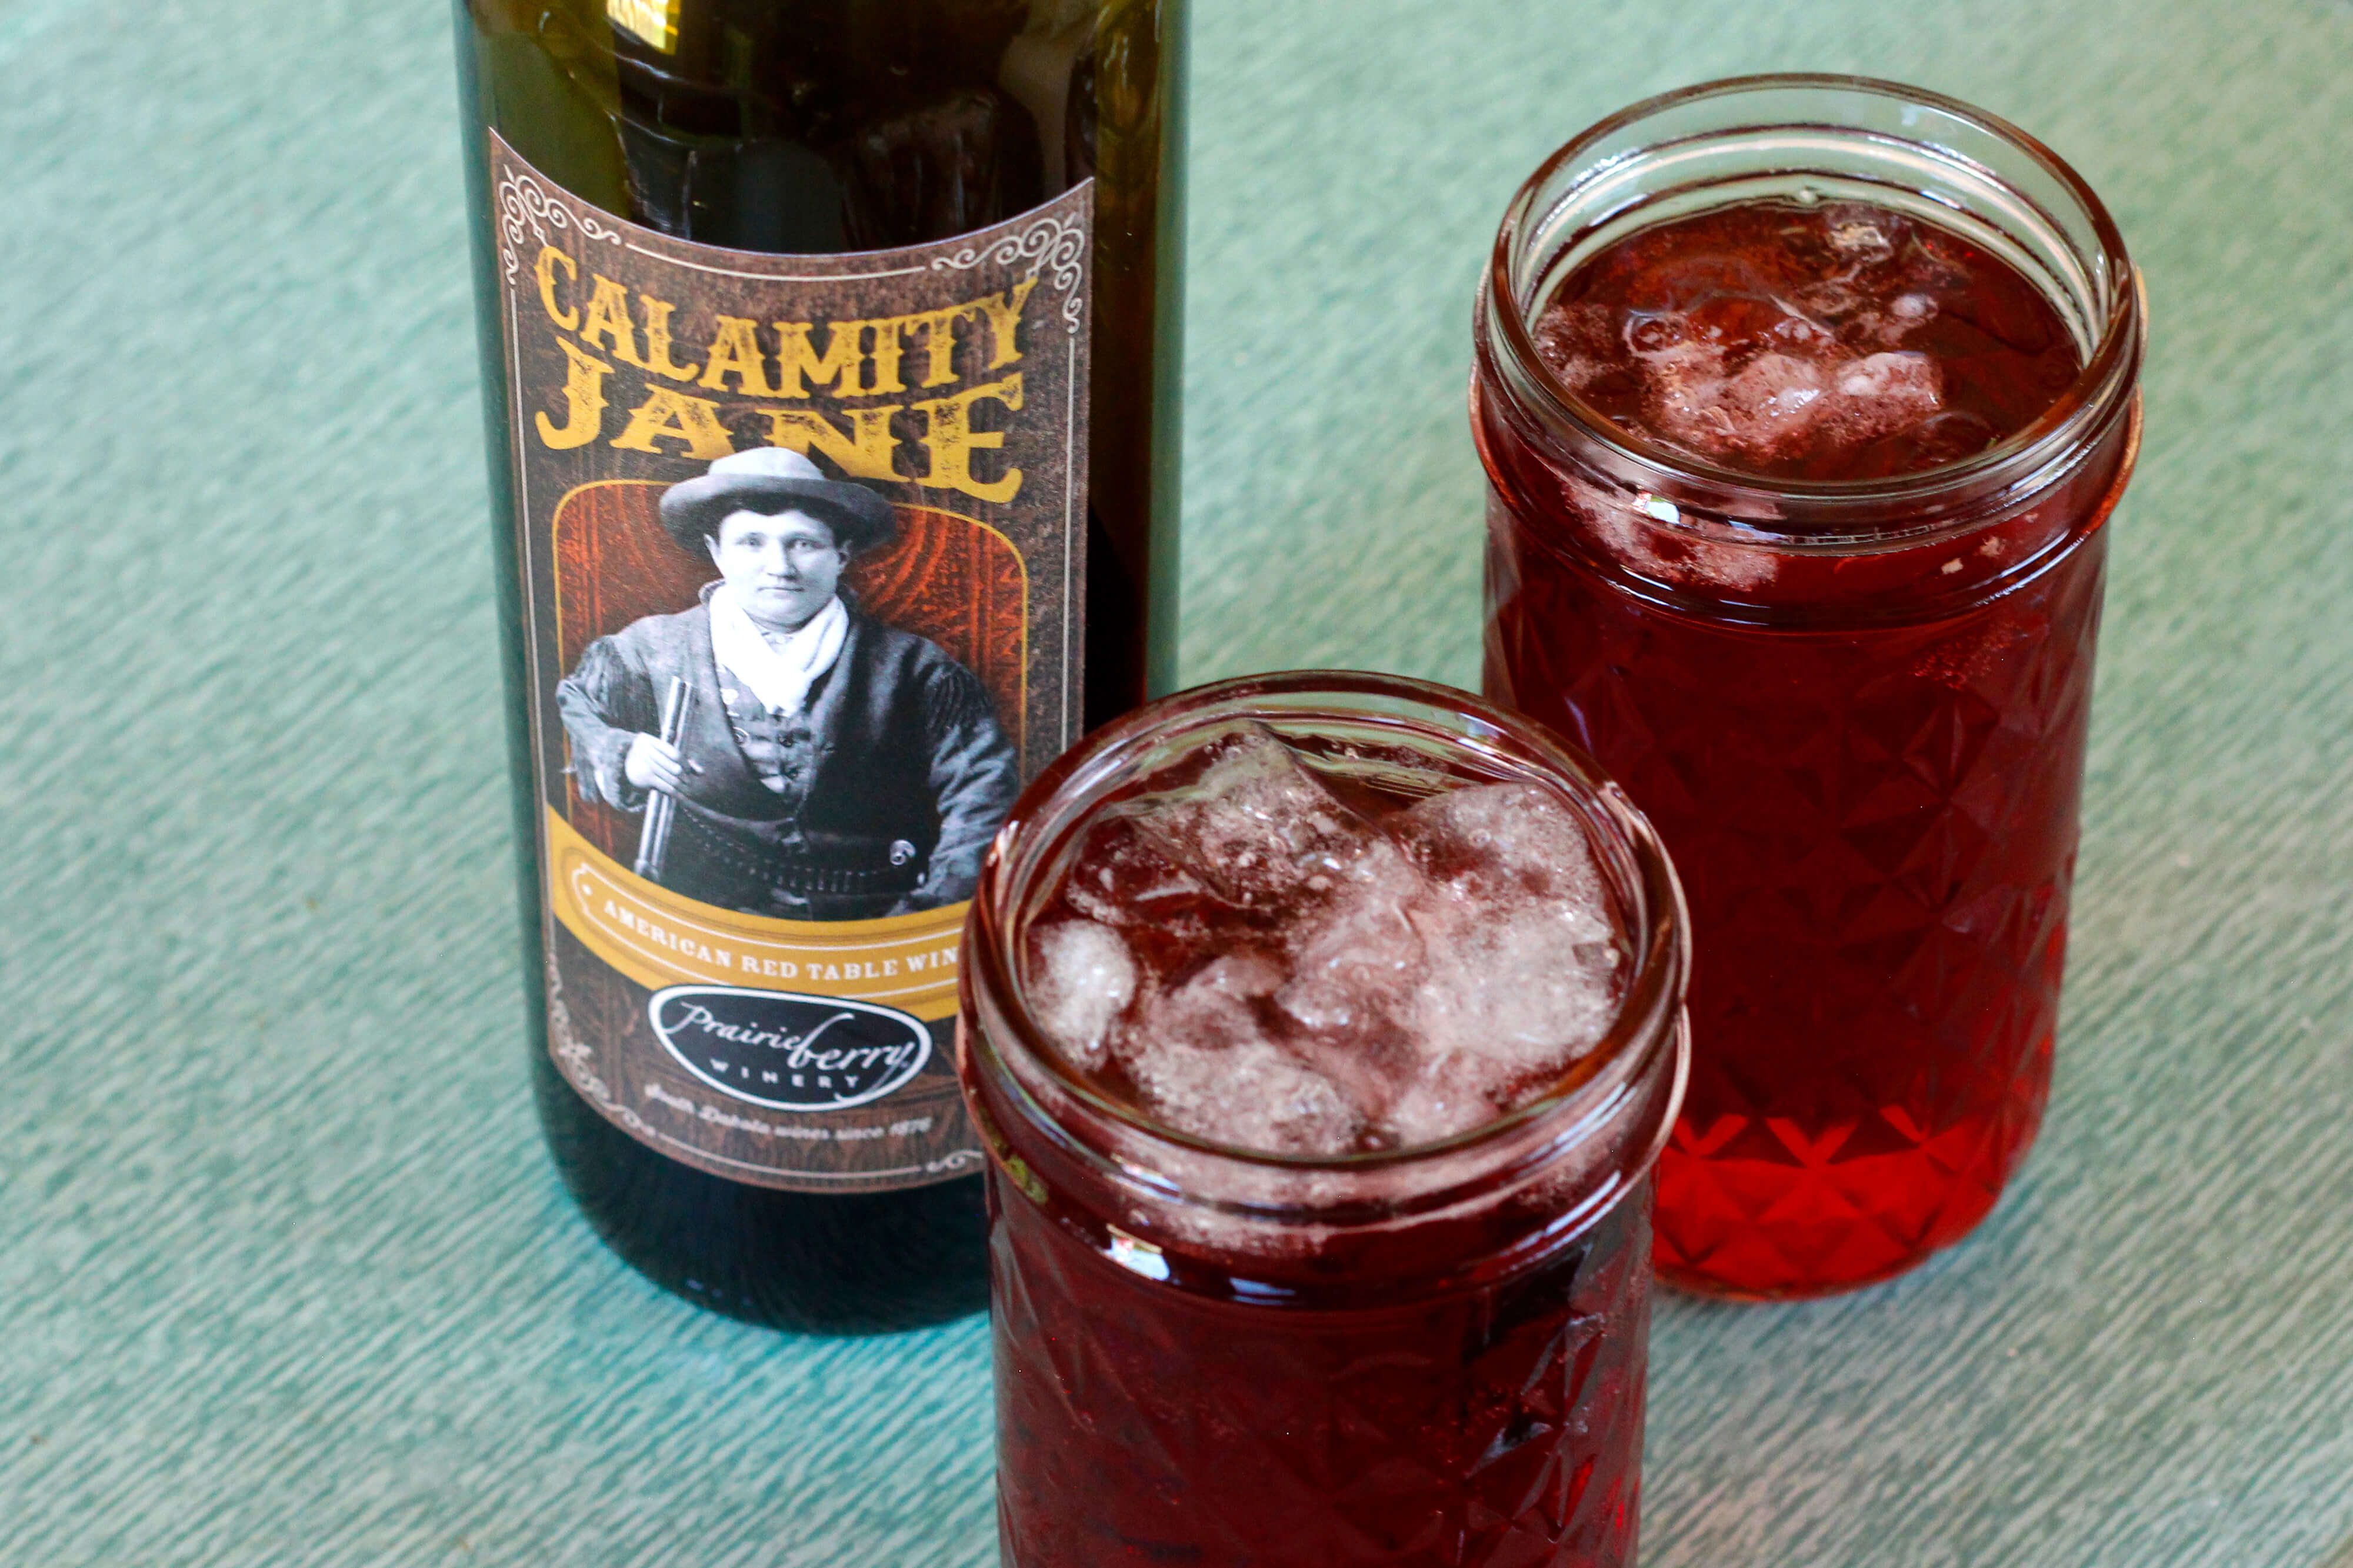 Two glasses of Calamity Jane Spritzer with a bottle of Calamity Jane wine.